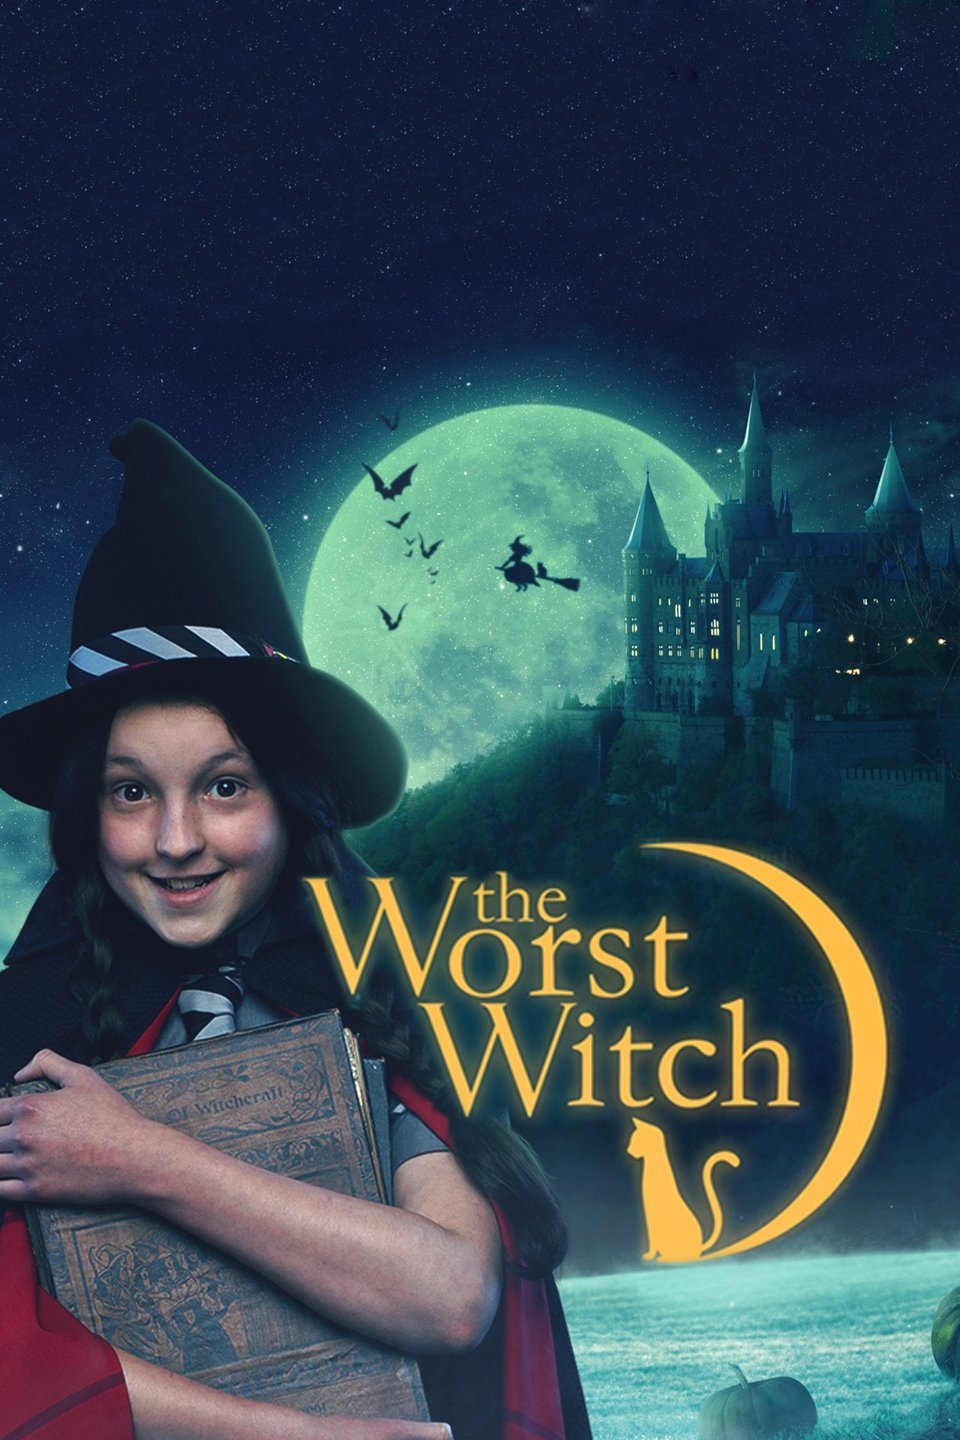 The Worst Witch S01 E12